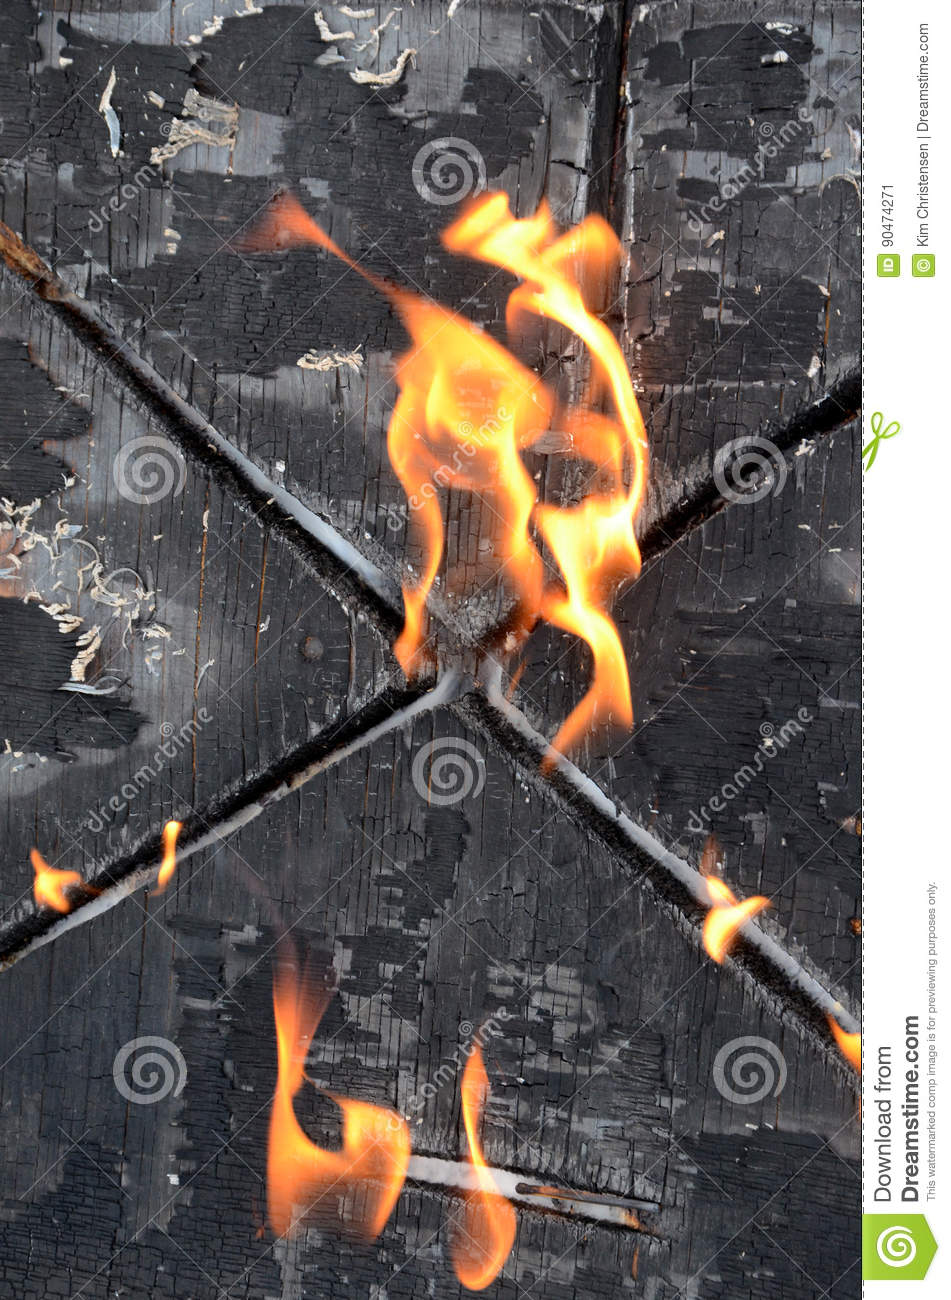 Burning X, A Burning Wood Surface Has By Coincidence Taken The Shape Of A  Burning St Andrew`s Cross.